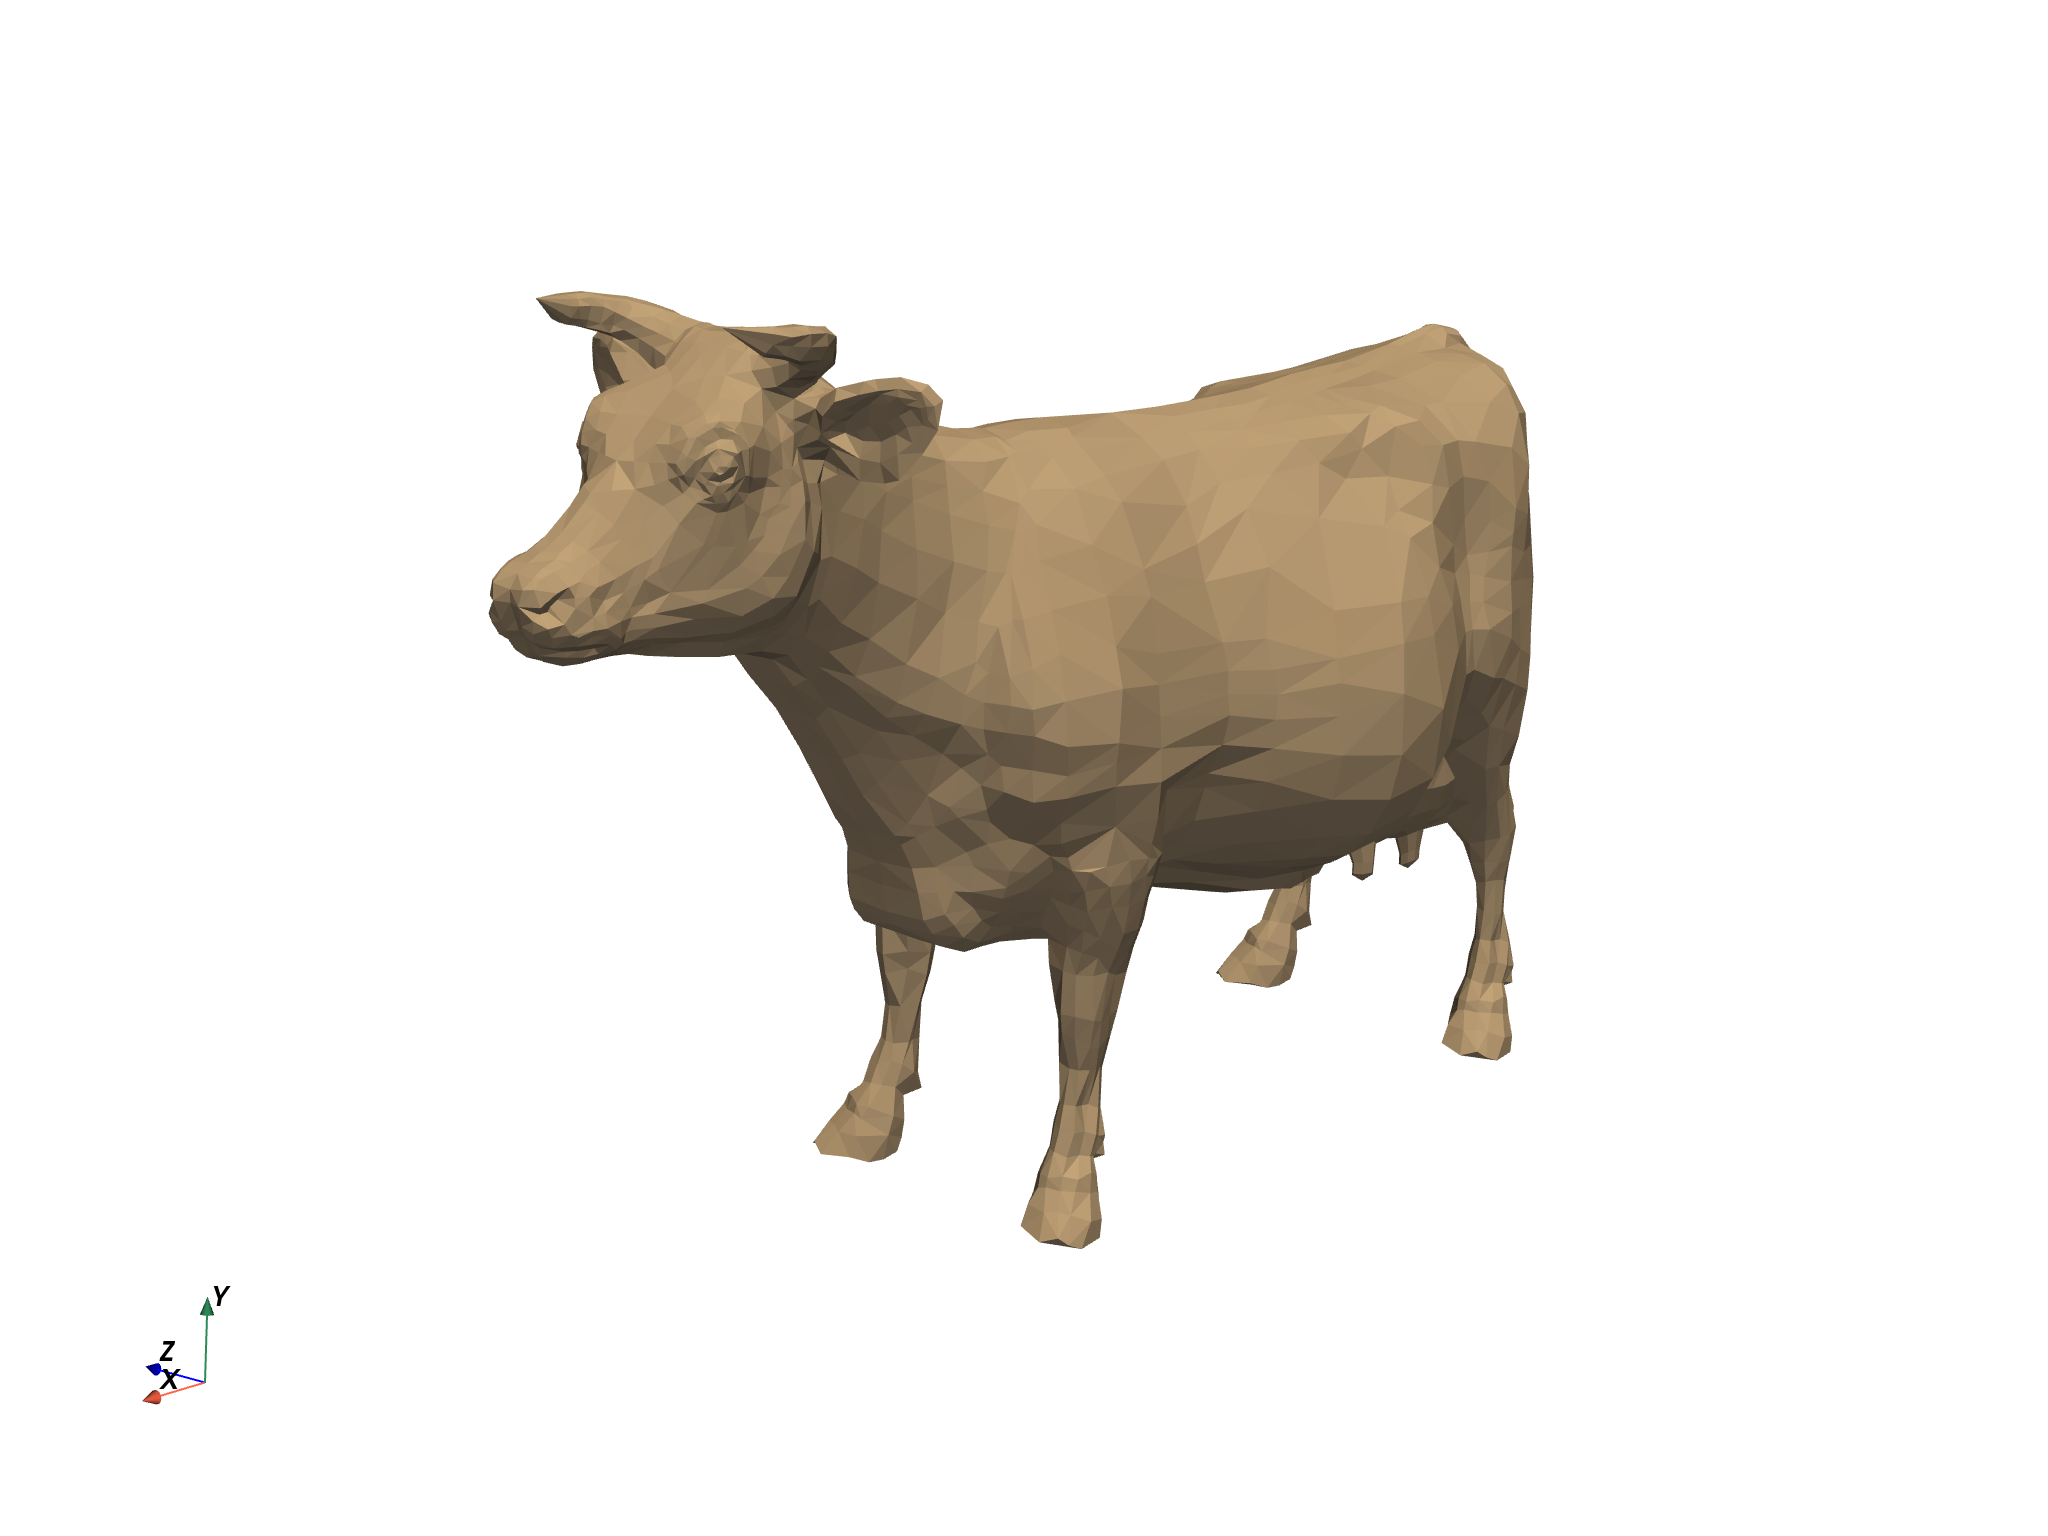 ../_images/sphx_glr_cow_001.png